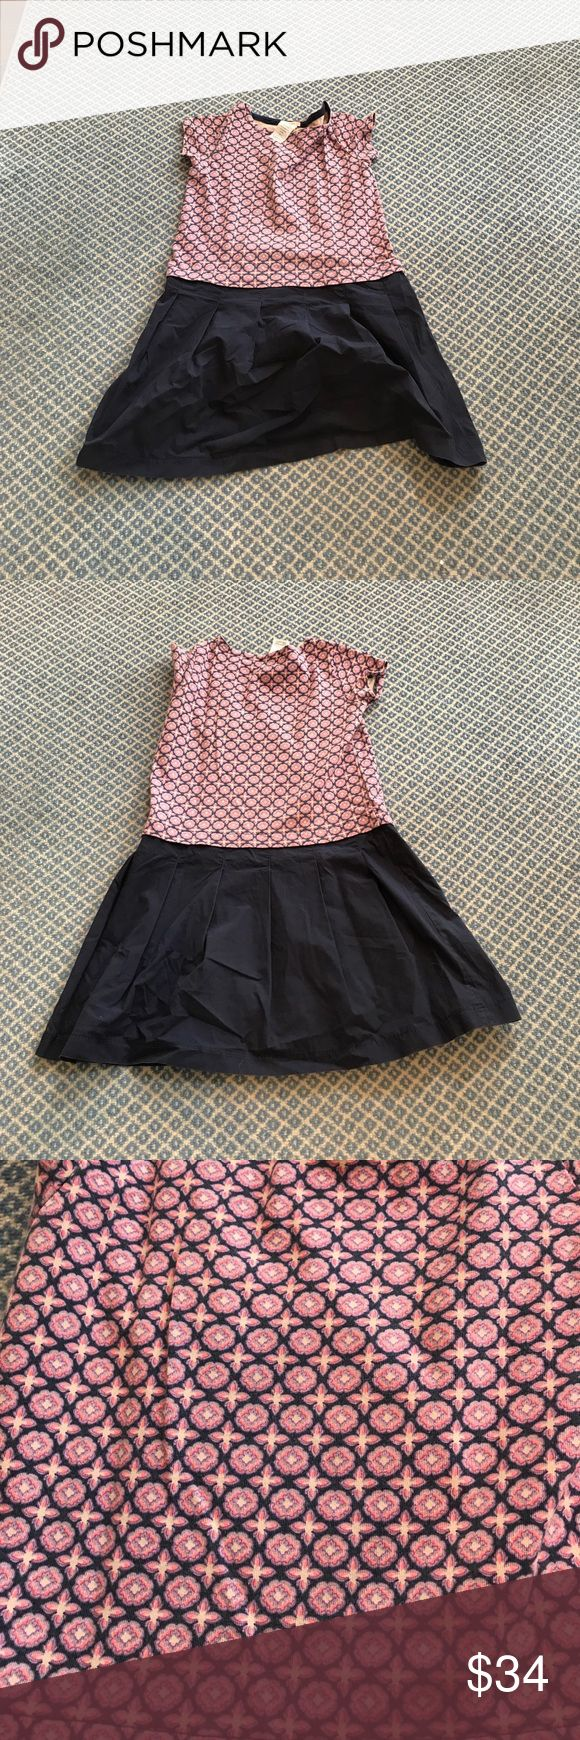 Crewcuts Kids Navy Blue And Pink dress. Cute Size 10, Crewcuts dress for kids. Cool multi colored print dress. Crewcuts Dresses Casual